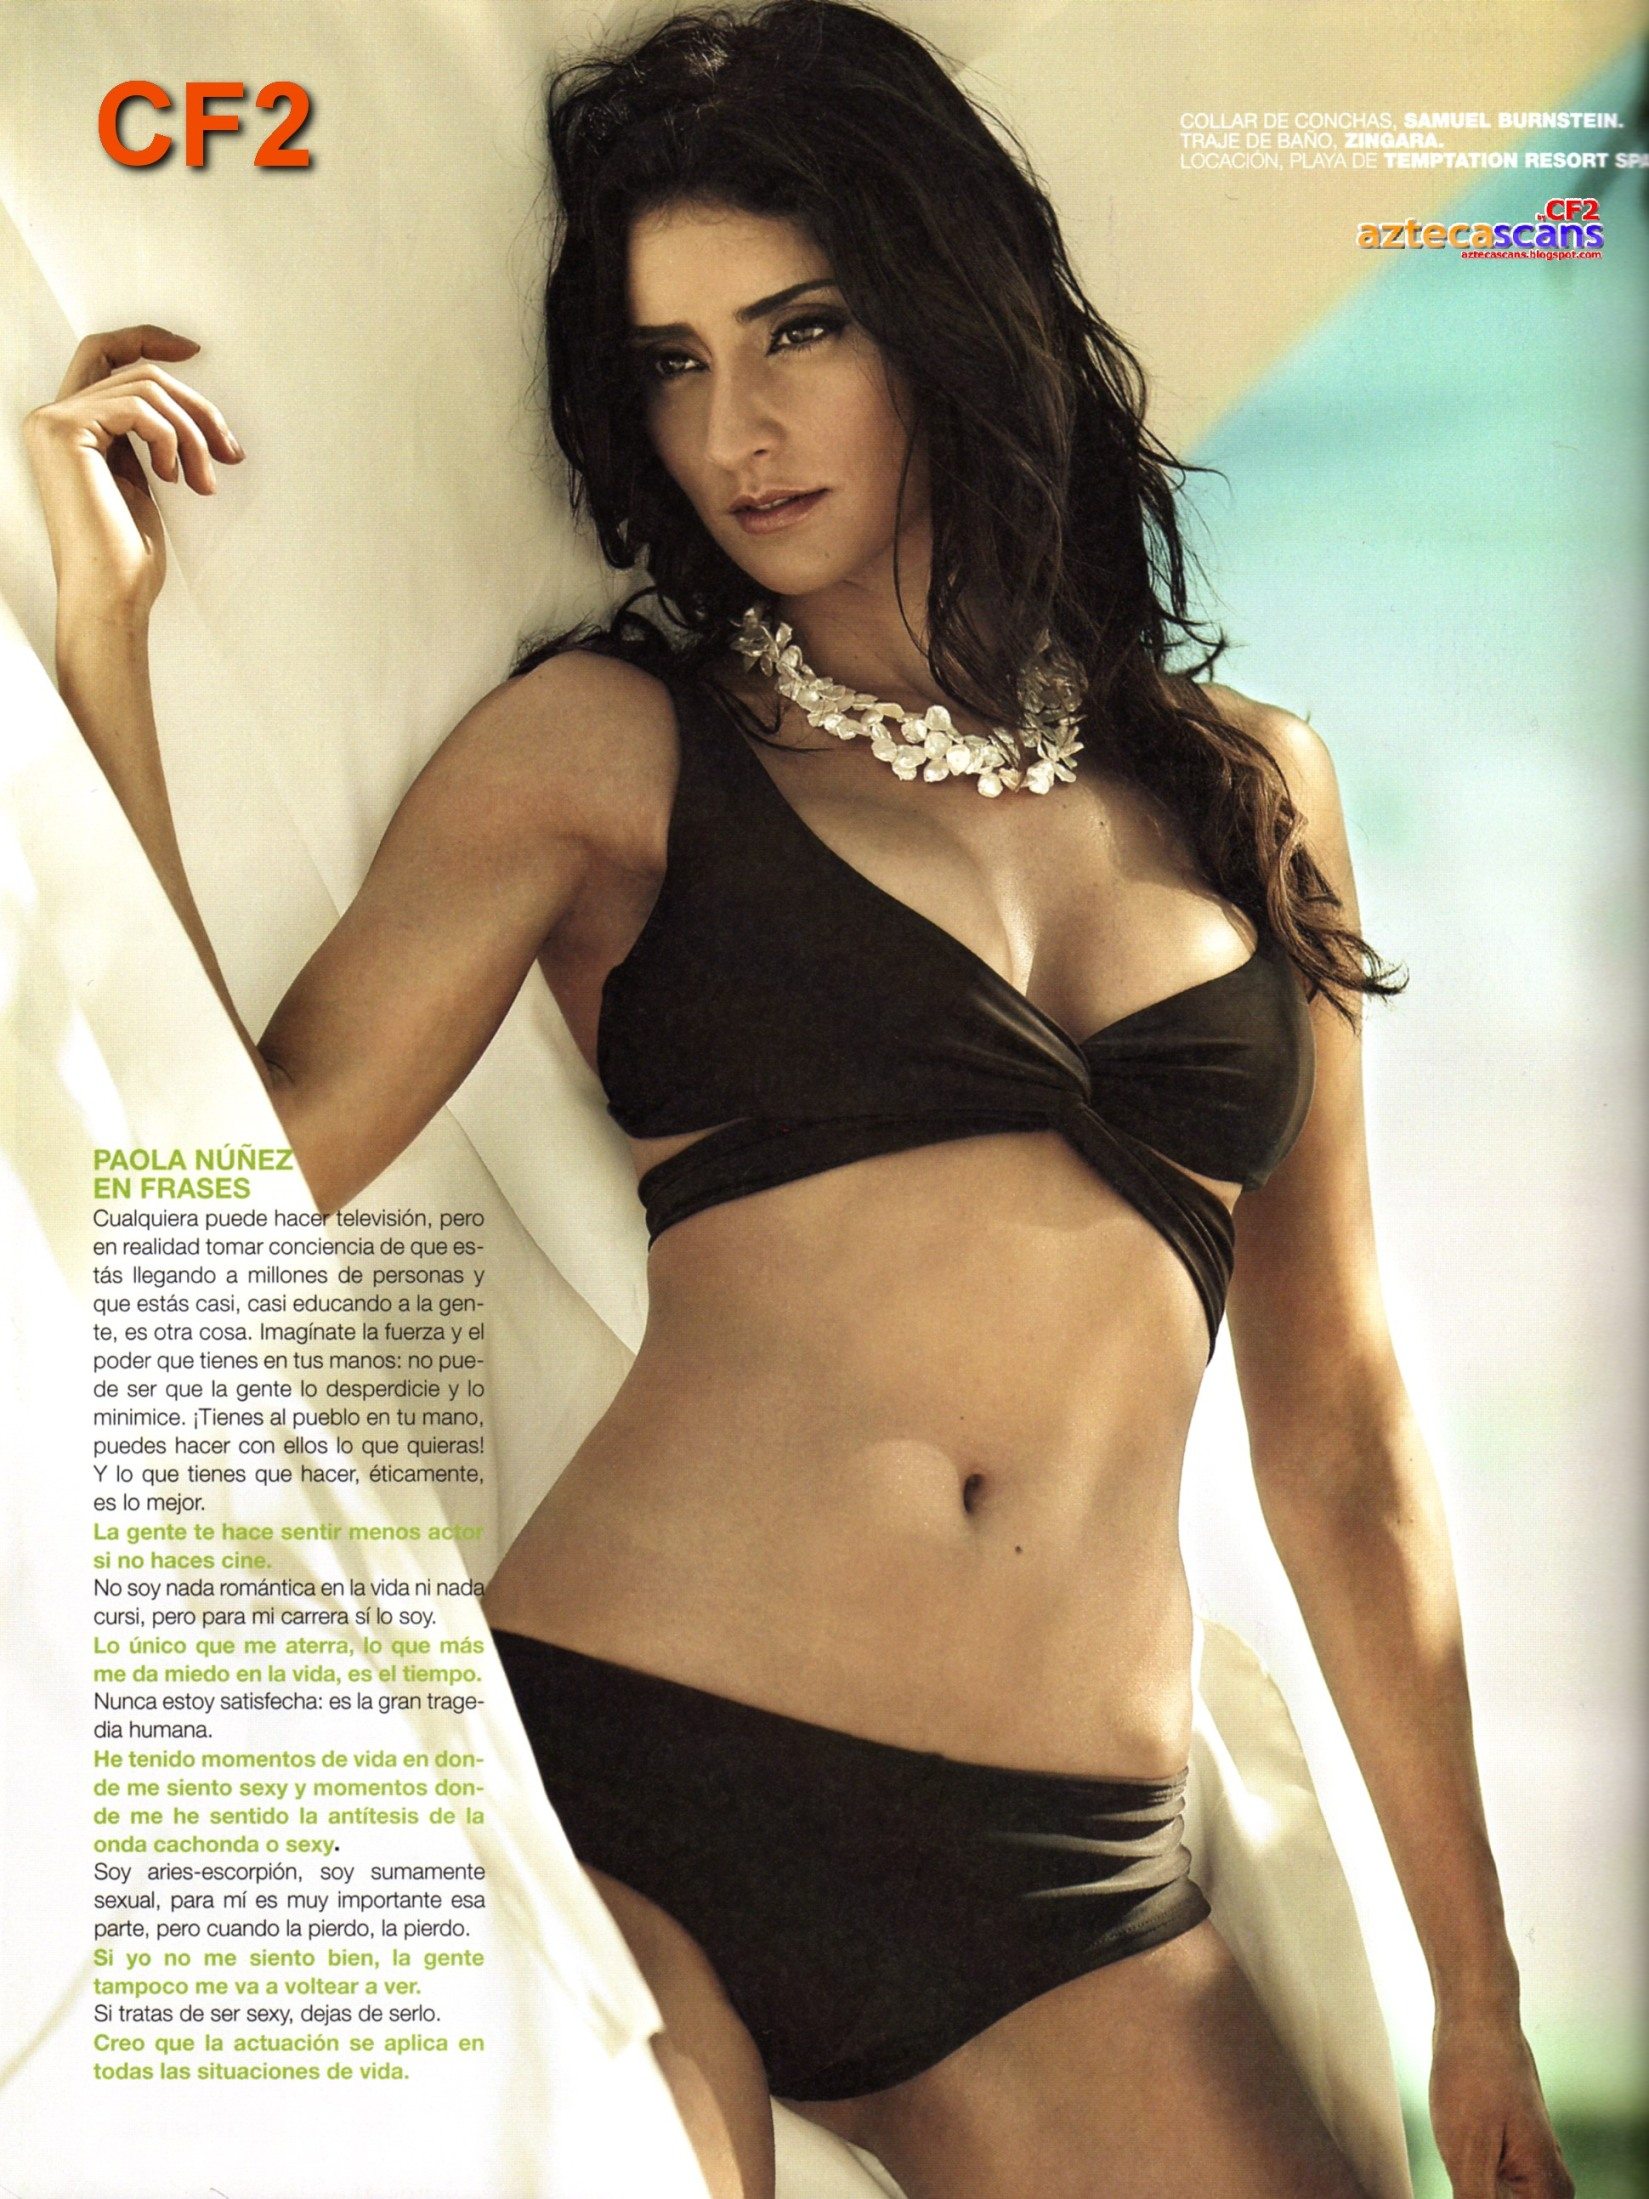 https://antologiadebellezas.files.wordpress.com/2010/05/cf2_paolanunez_723.jpg